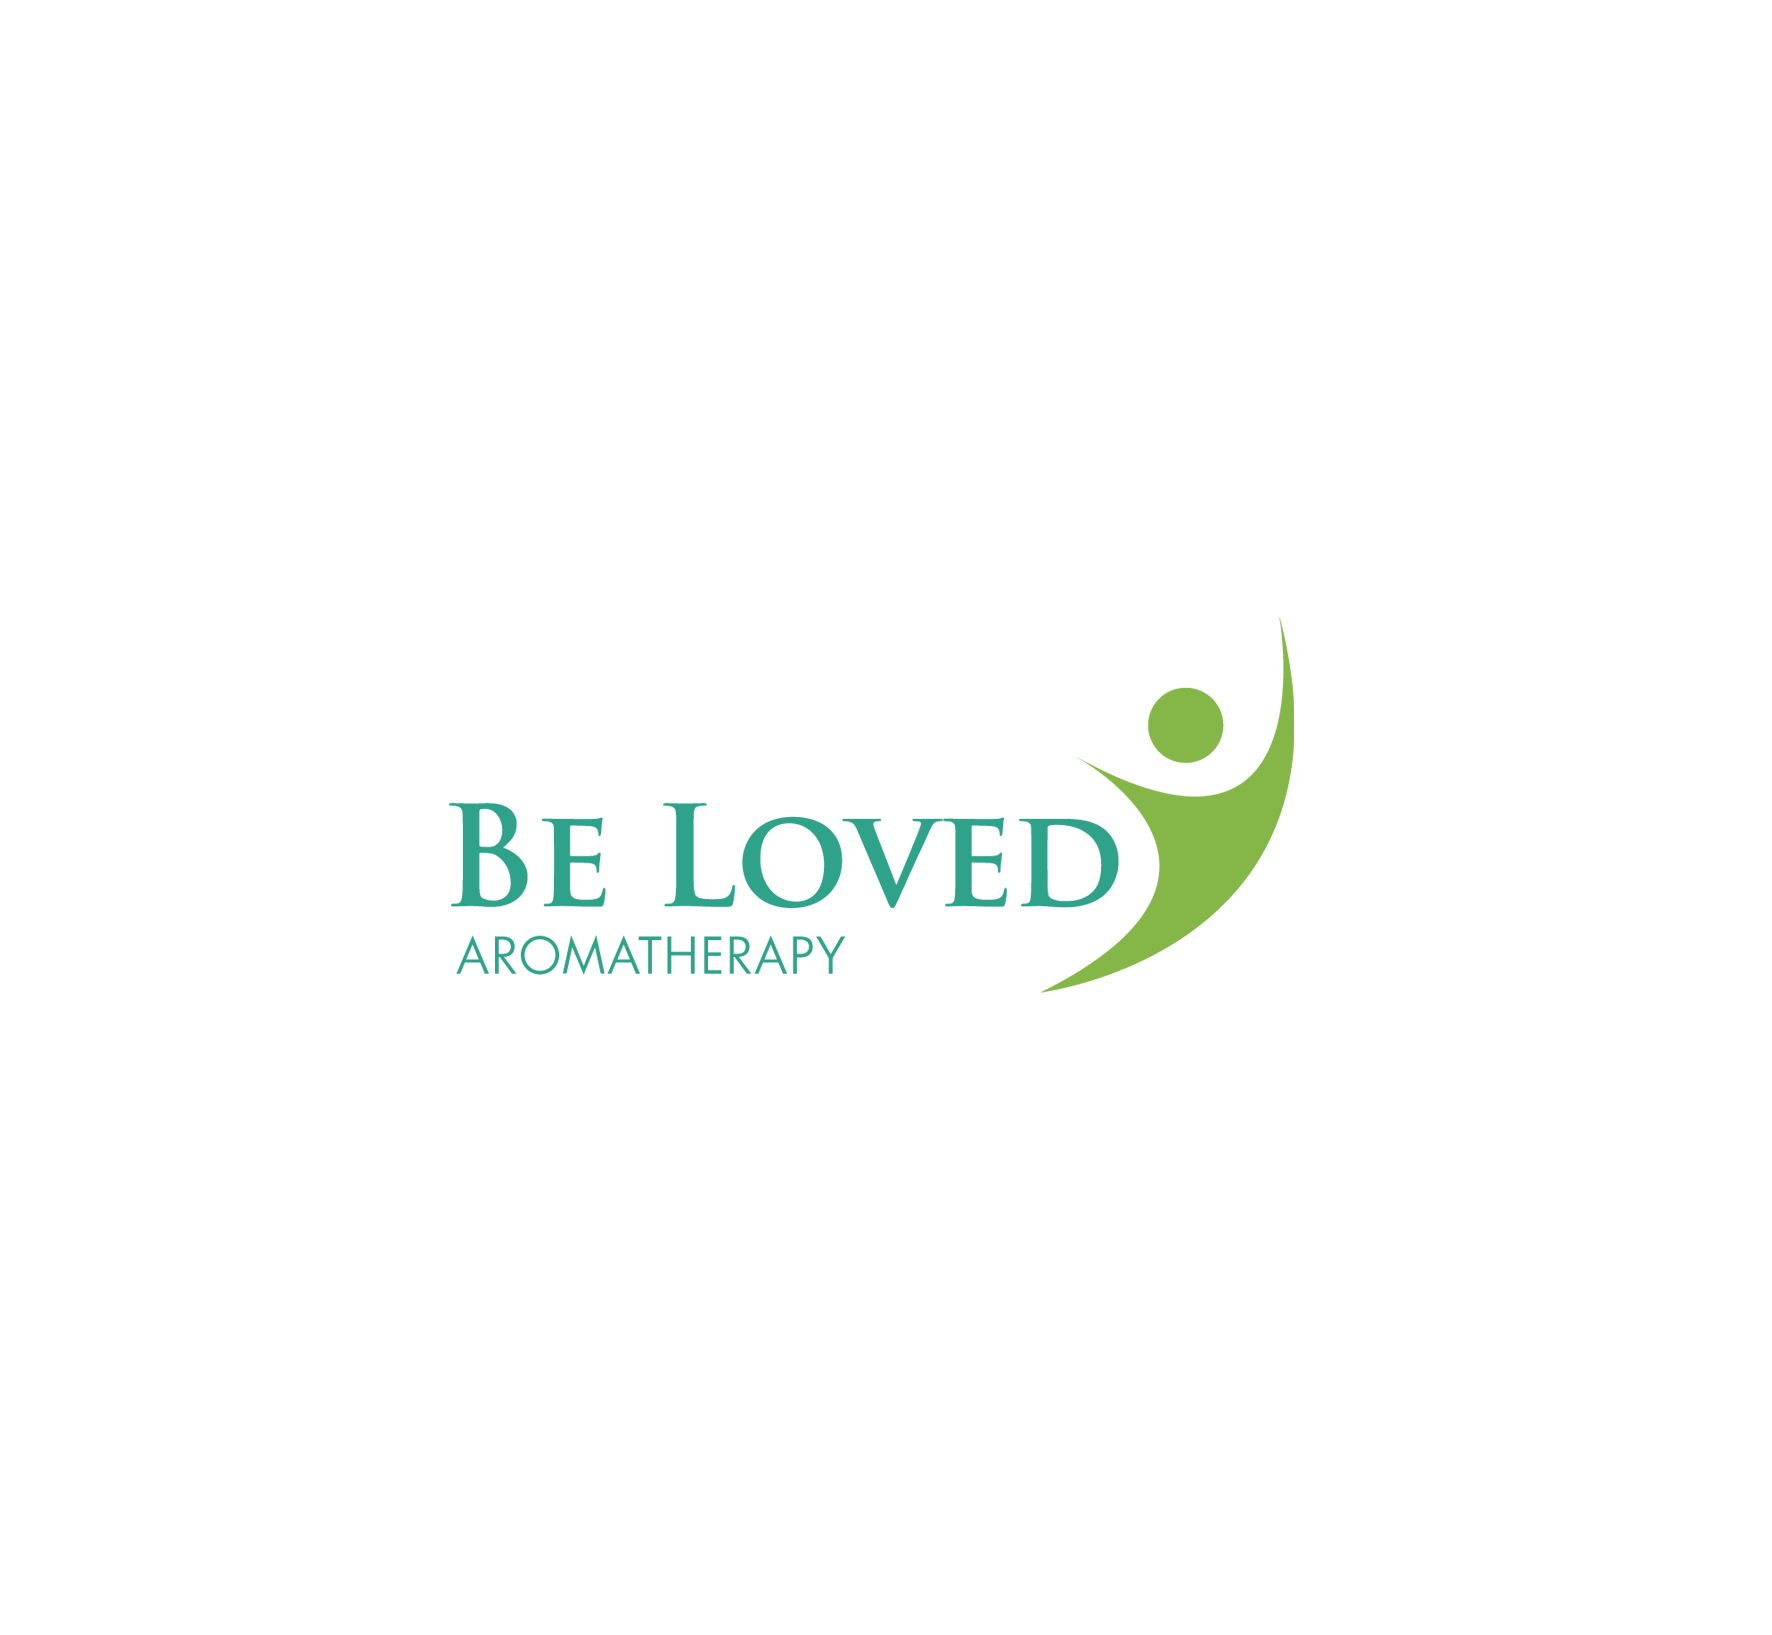 Logo Design by luna - Entry No. 74 in the Logo Design Contest Fun Logo Design for Be Loved Aromatherapy.